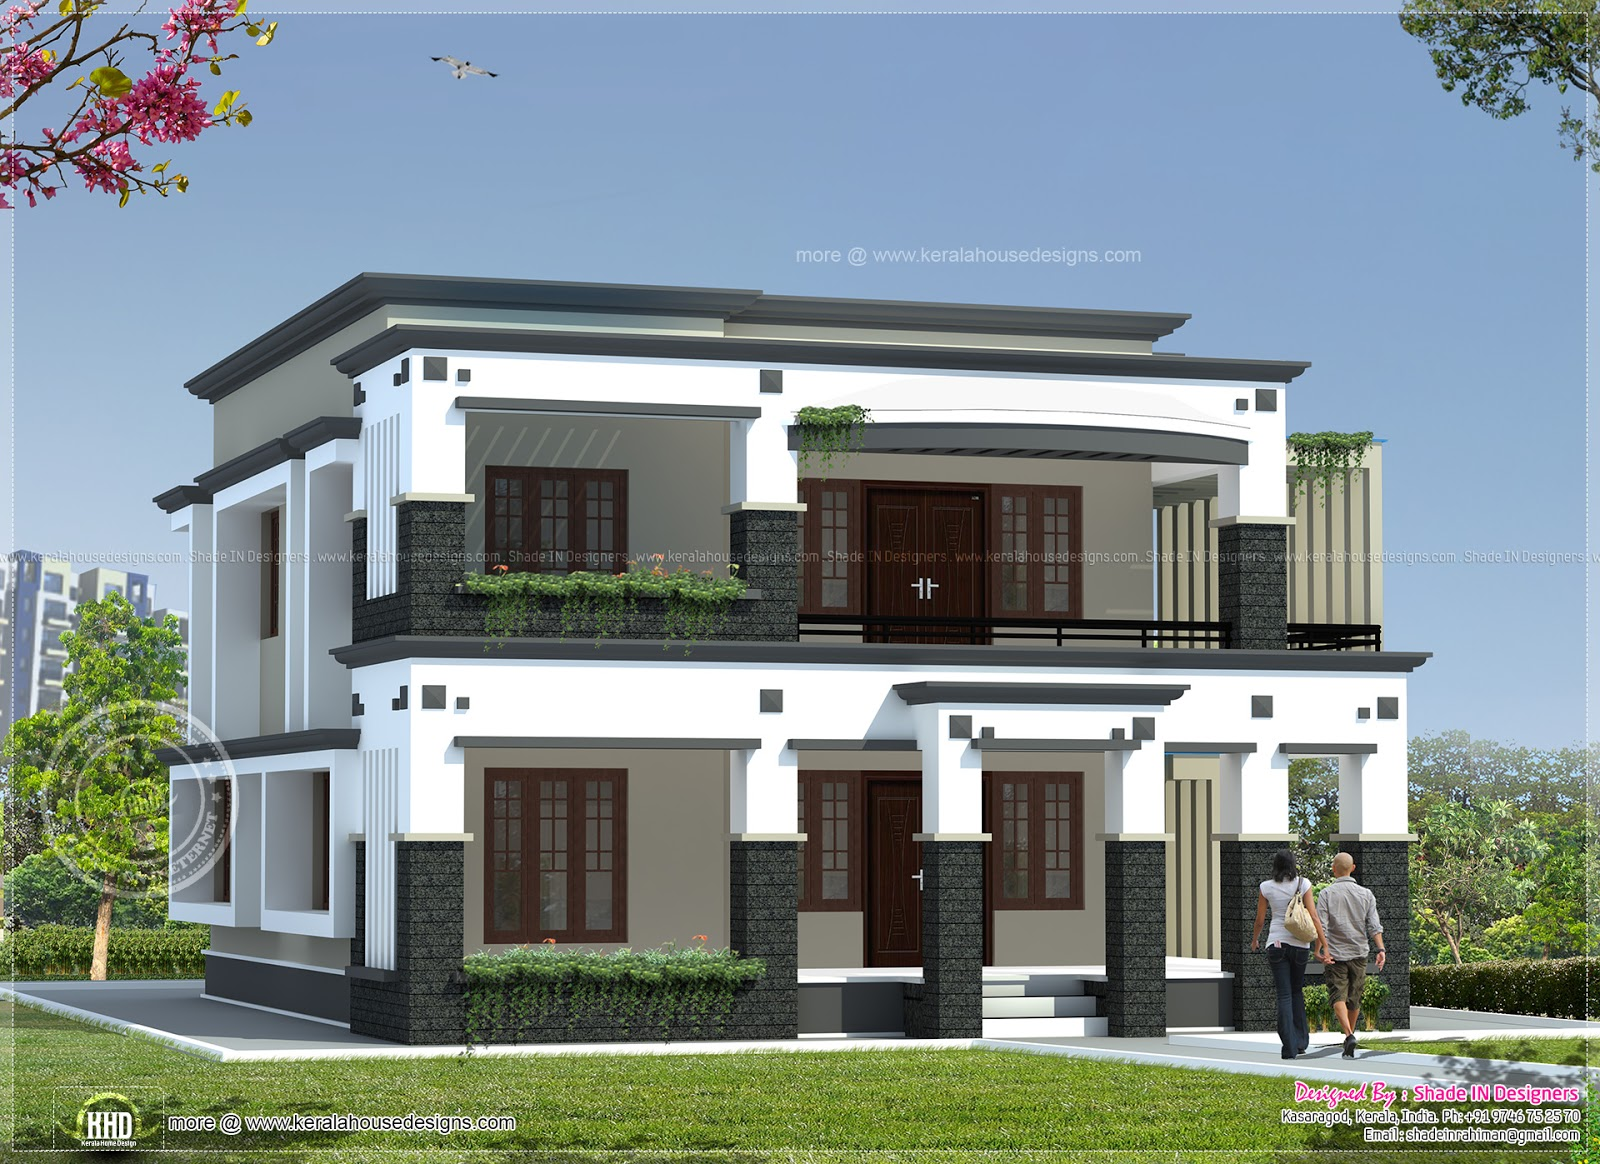 241 Square Meter Flat Roof House Indian House Plans